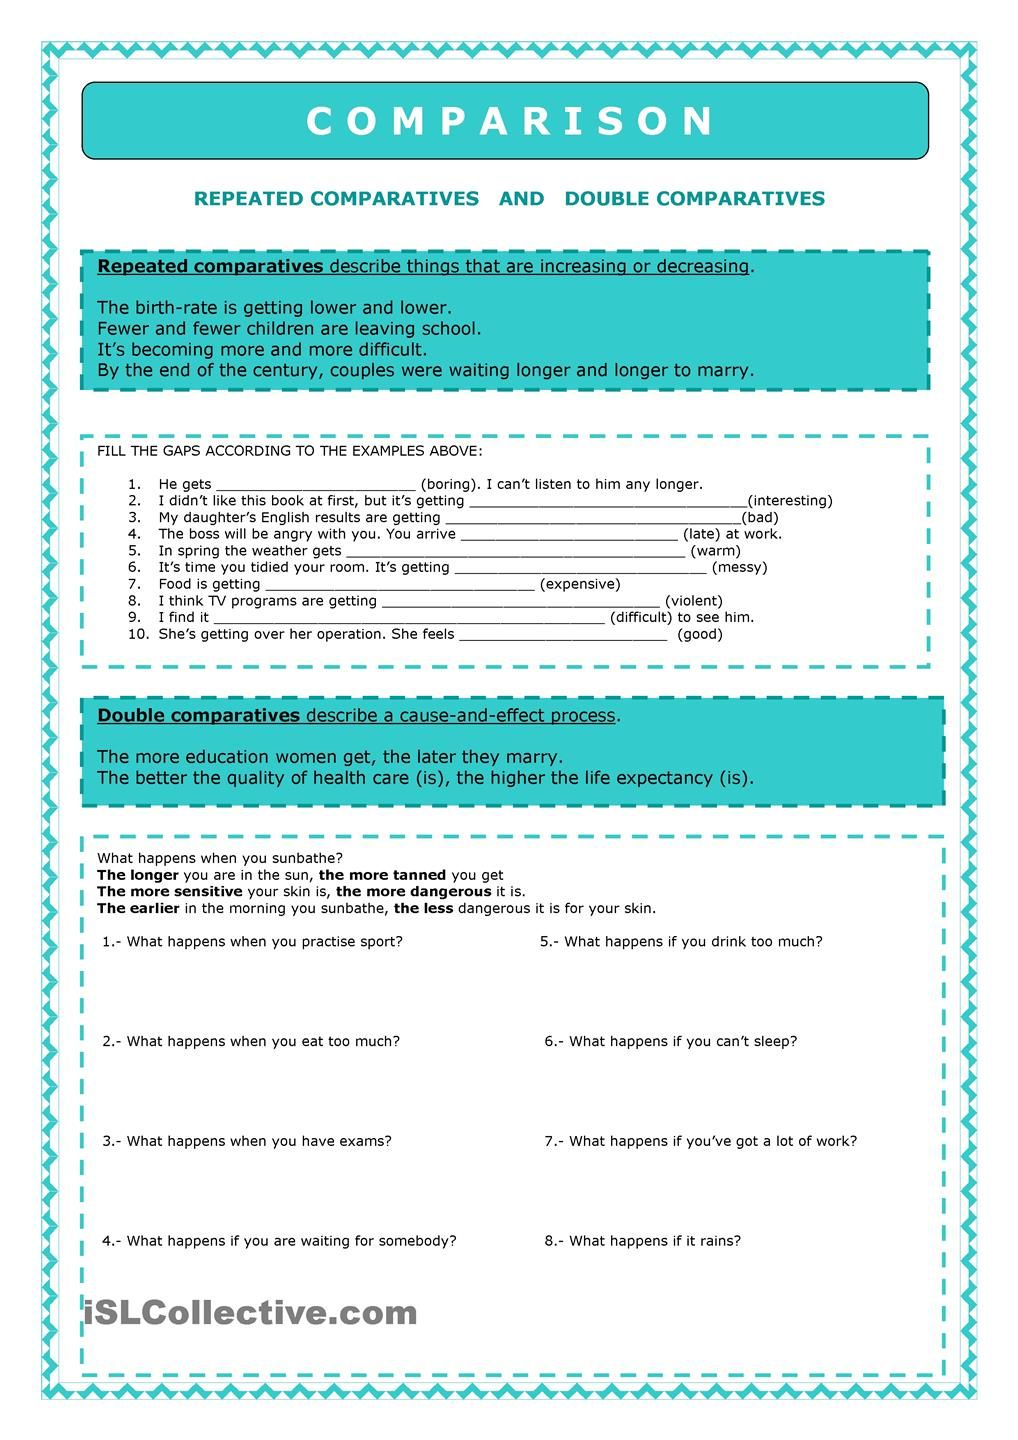 worksheet Comparatives In Spanish Worksheets comparison repeated comparative and double comparatives worksheet free esl printable worksheets made by teachers